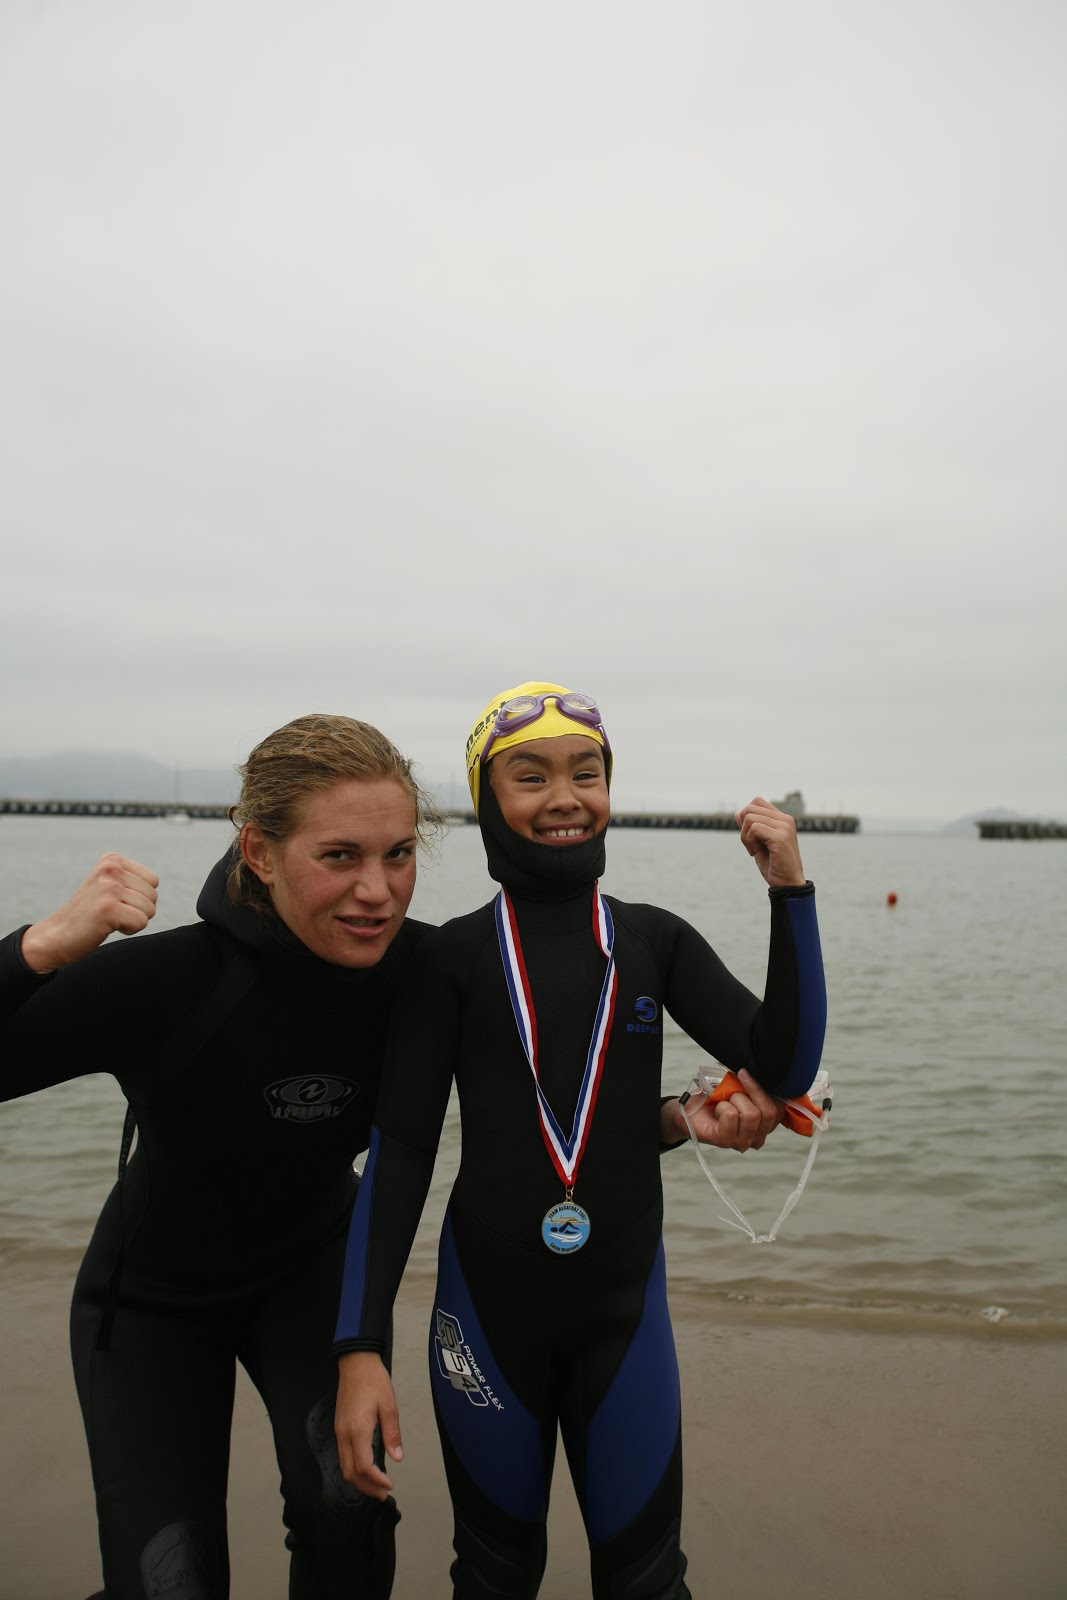 Finish Line of World Record Swim